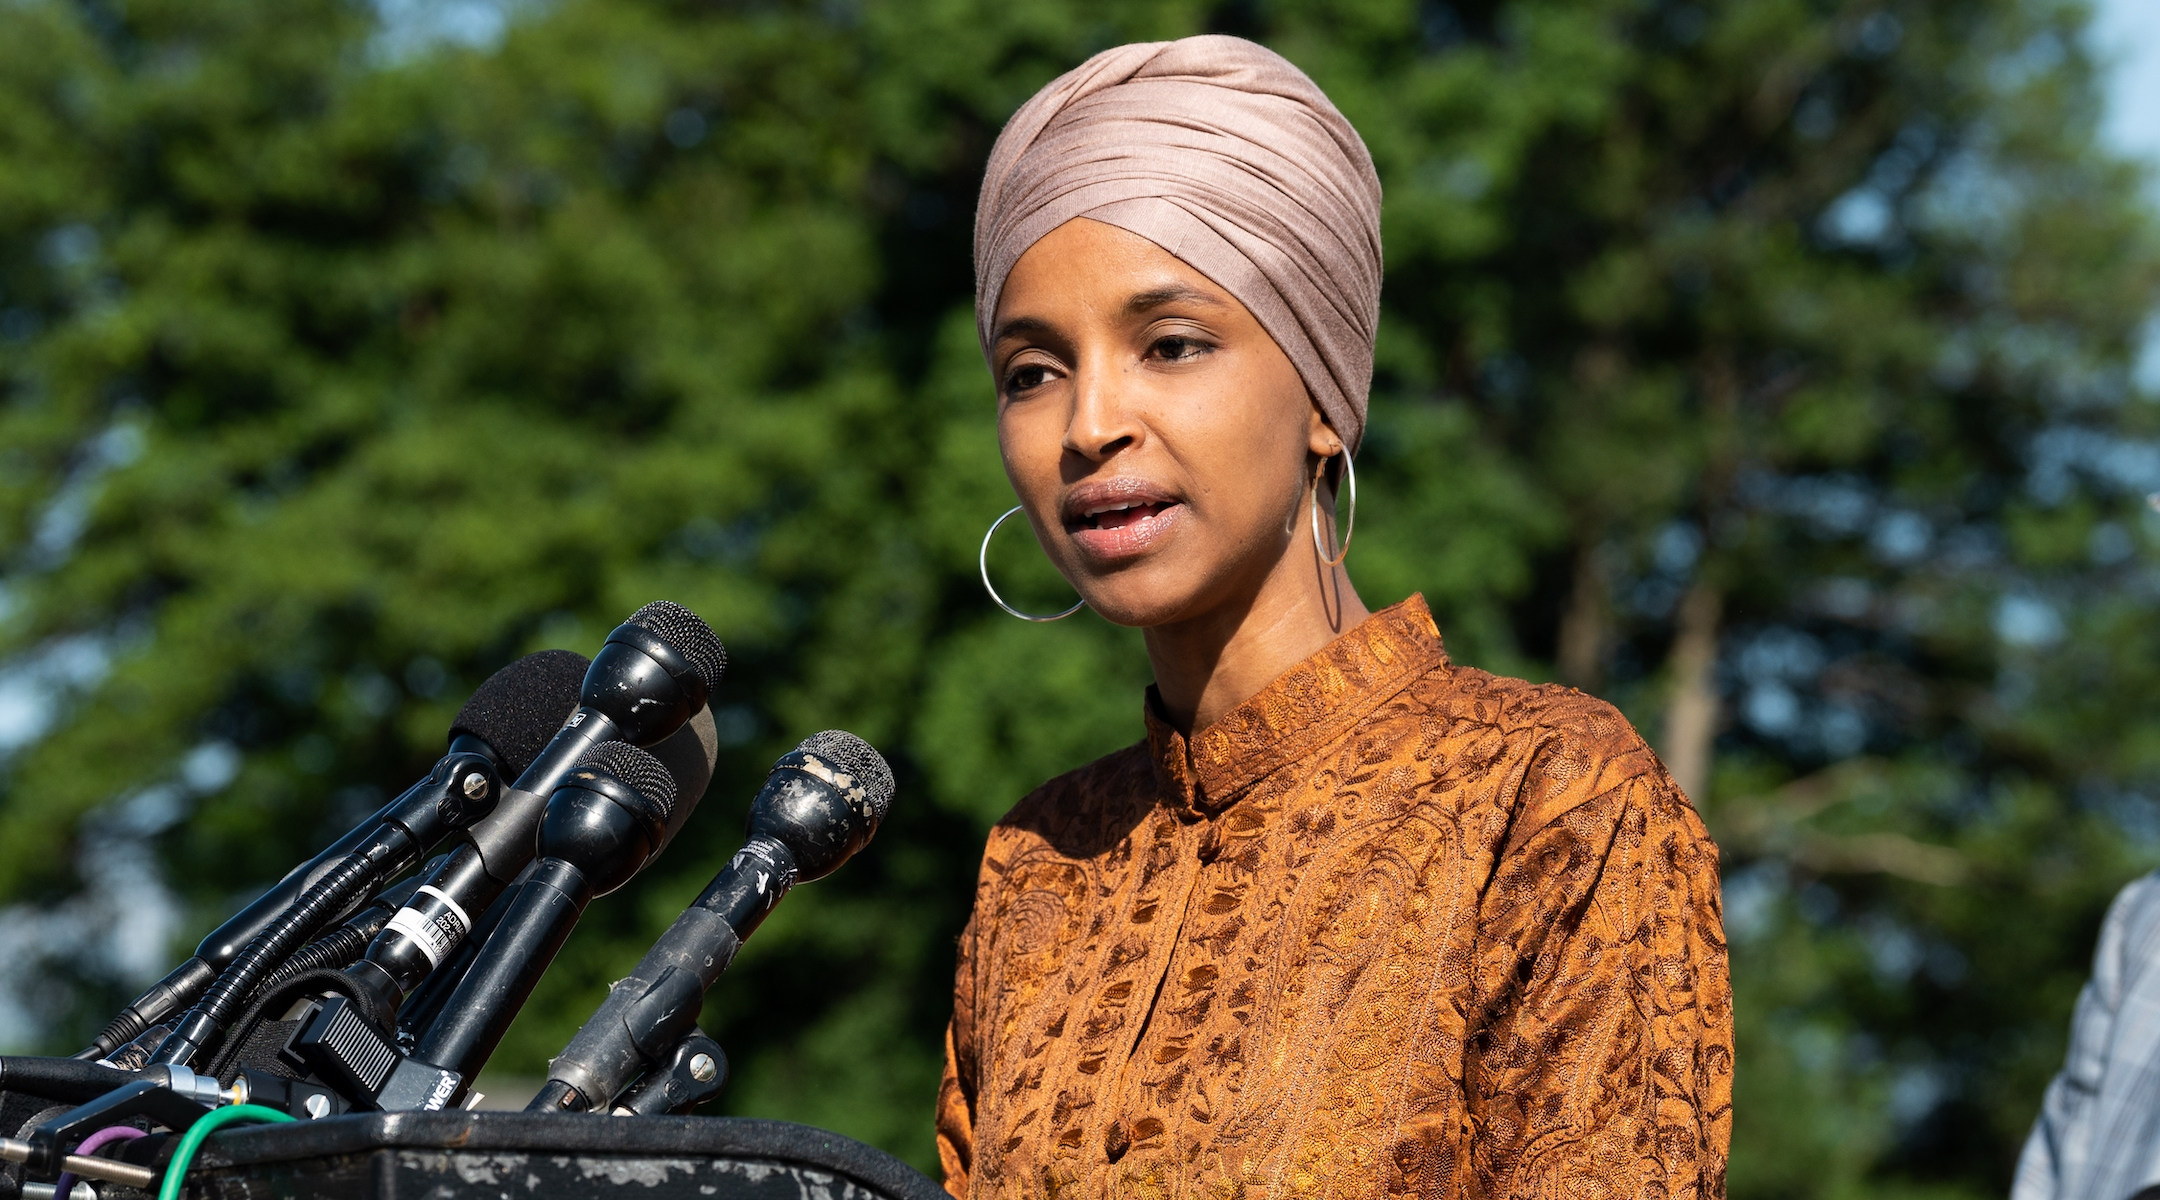 Rep. Ilhan Omar says Israel and Saudi Arabia both have too much influence on Trump...